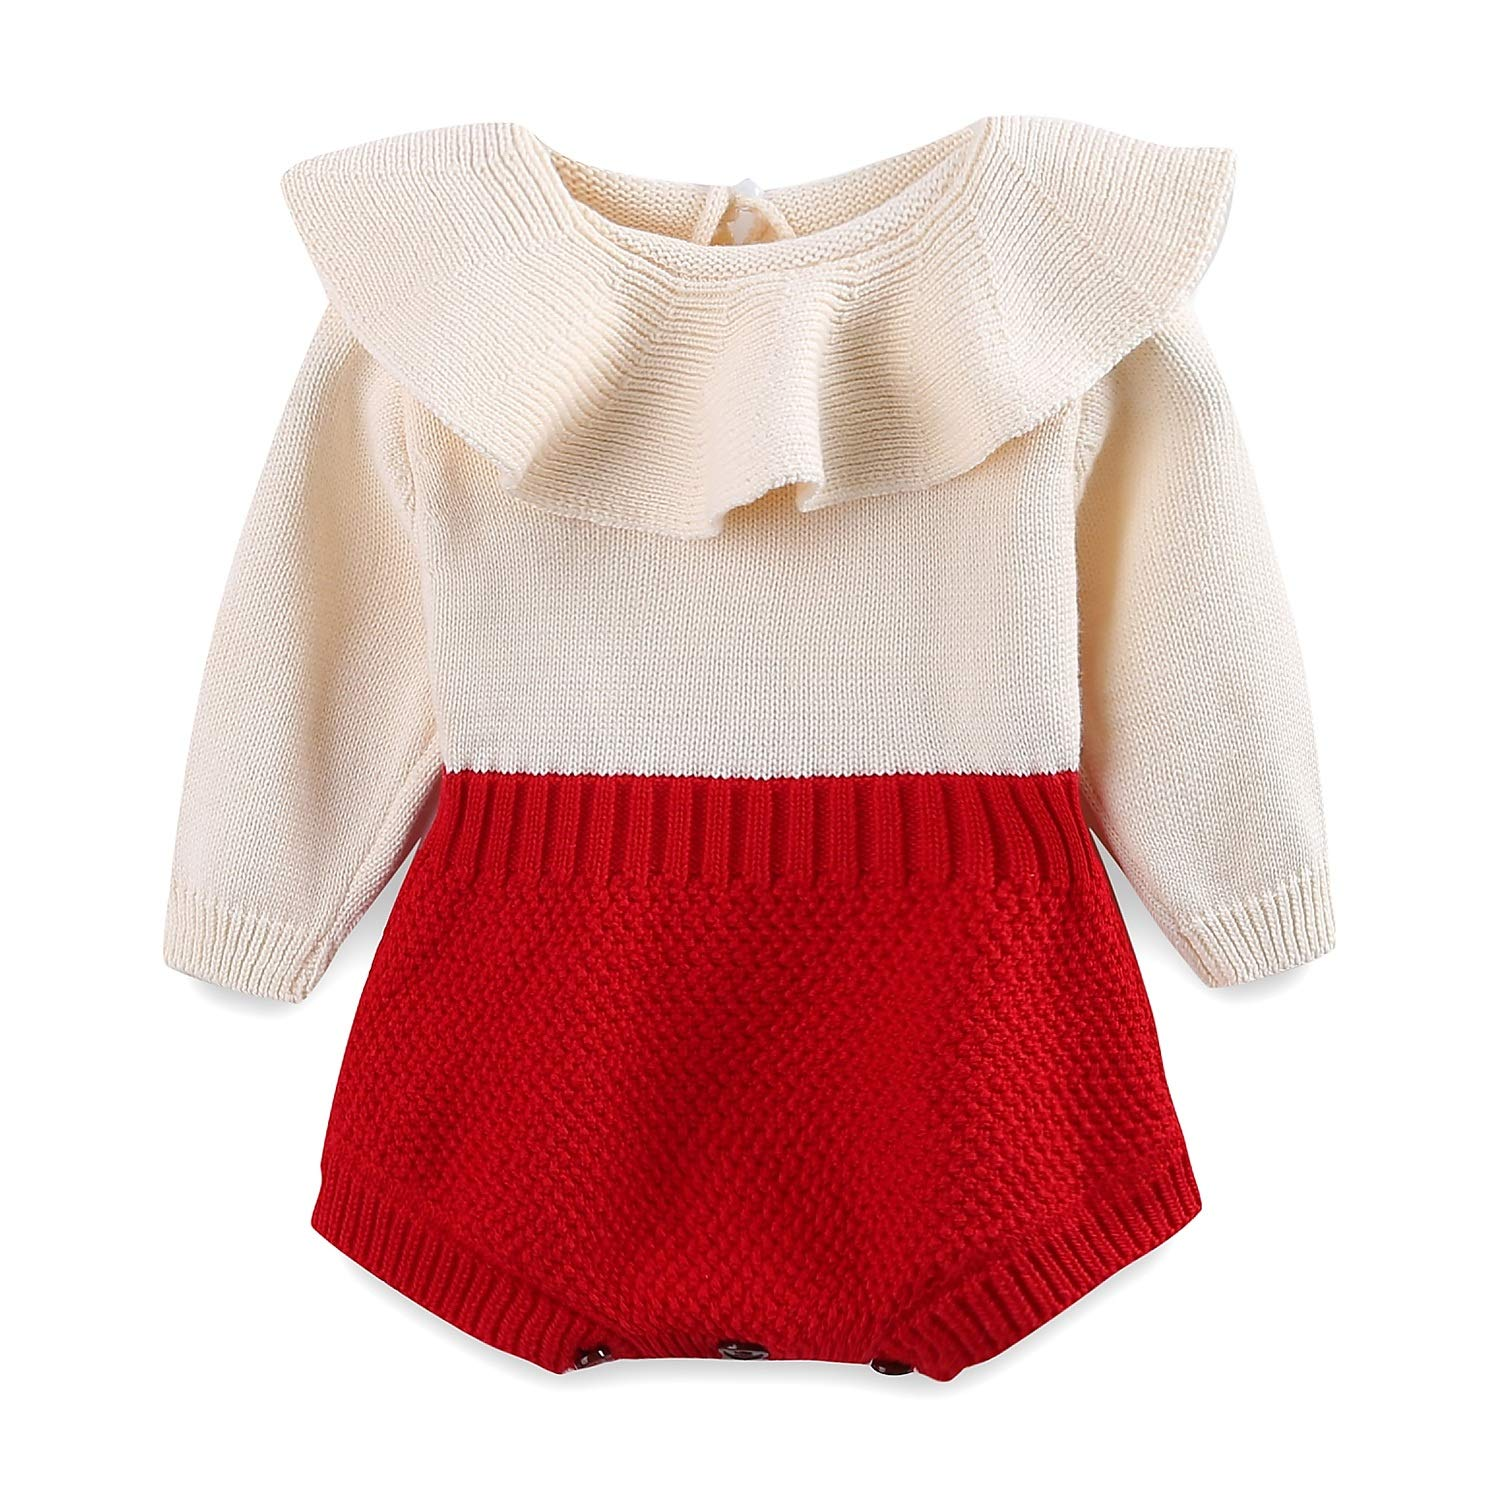 Mud Kingdom Baby Girl Knit Rompers Collar Sweet